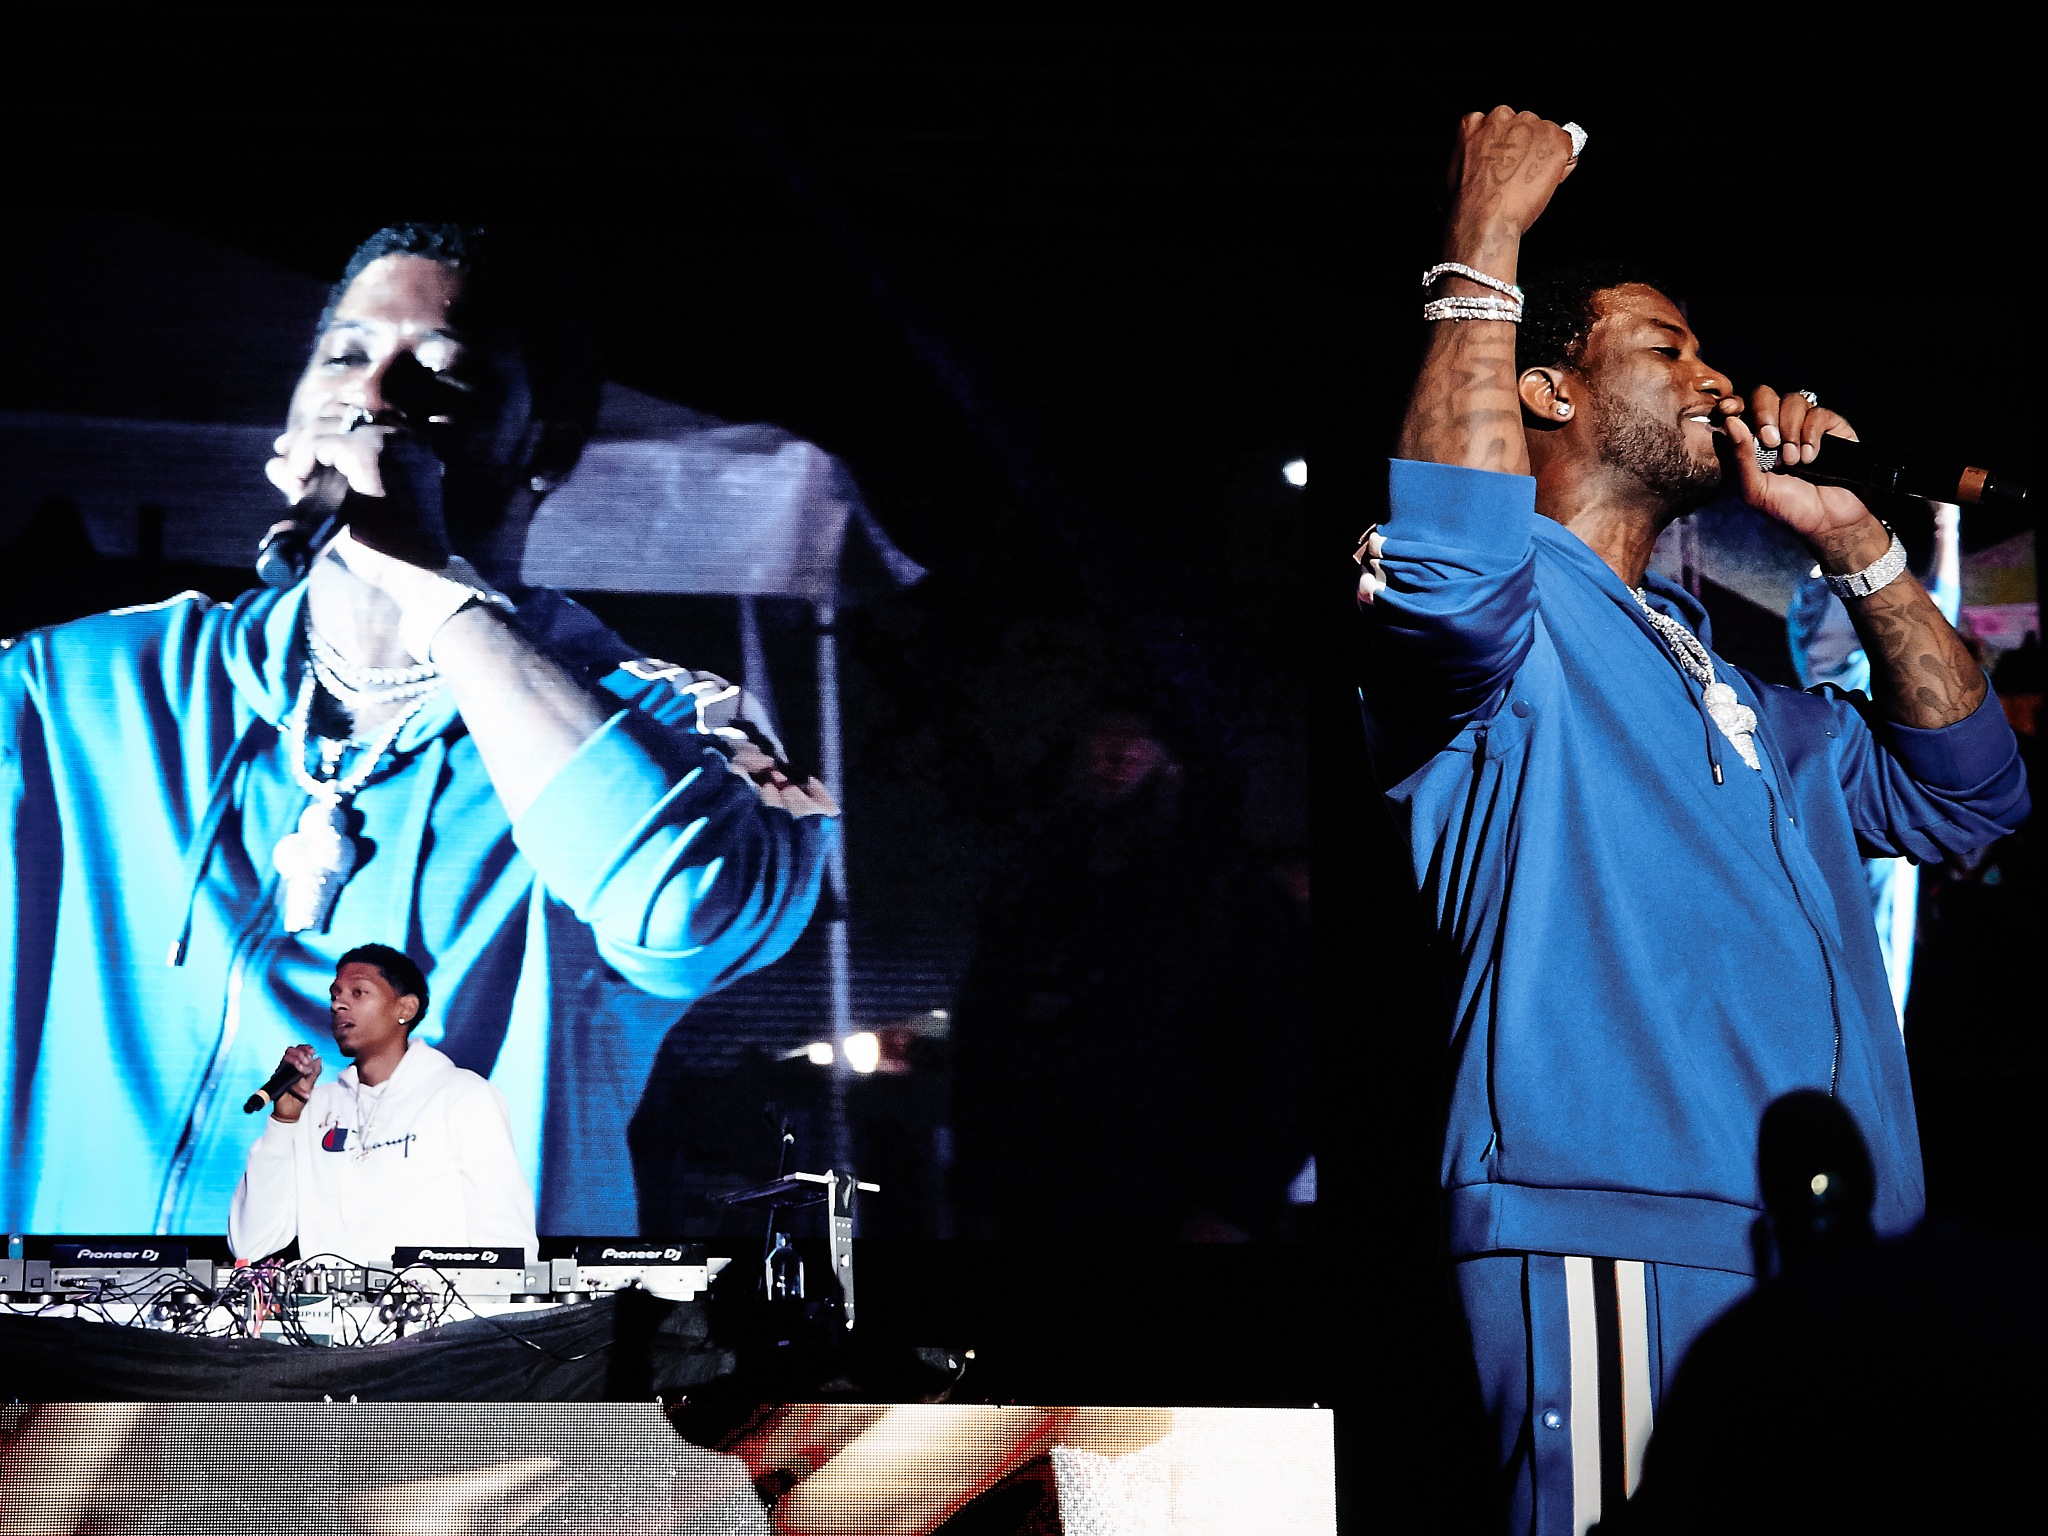 Gucci and DJ by Raul Sanchez